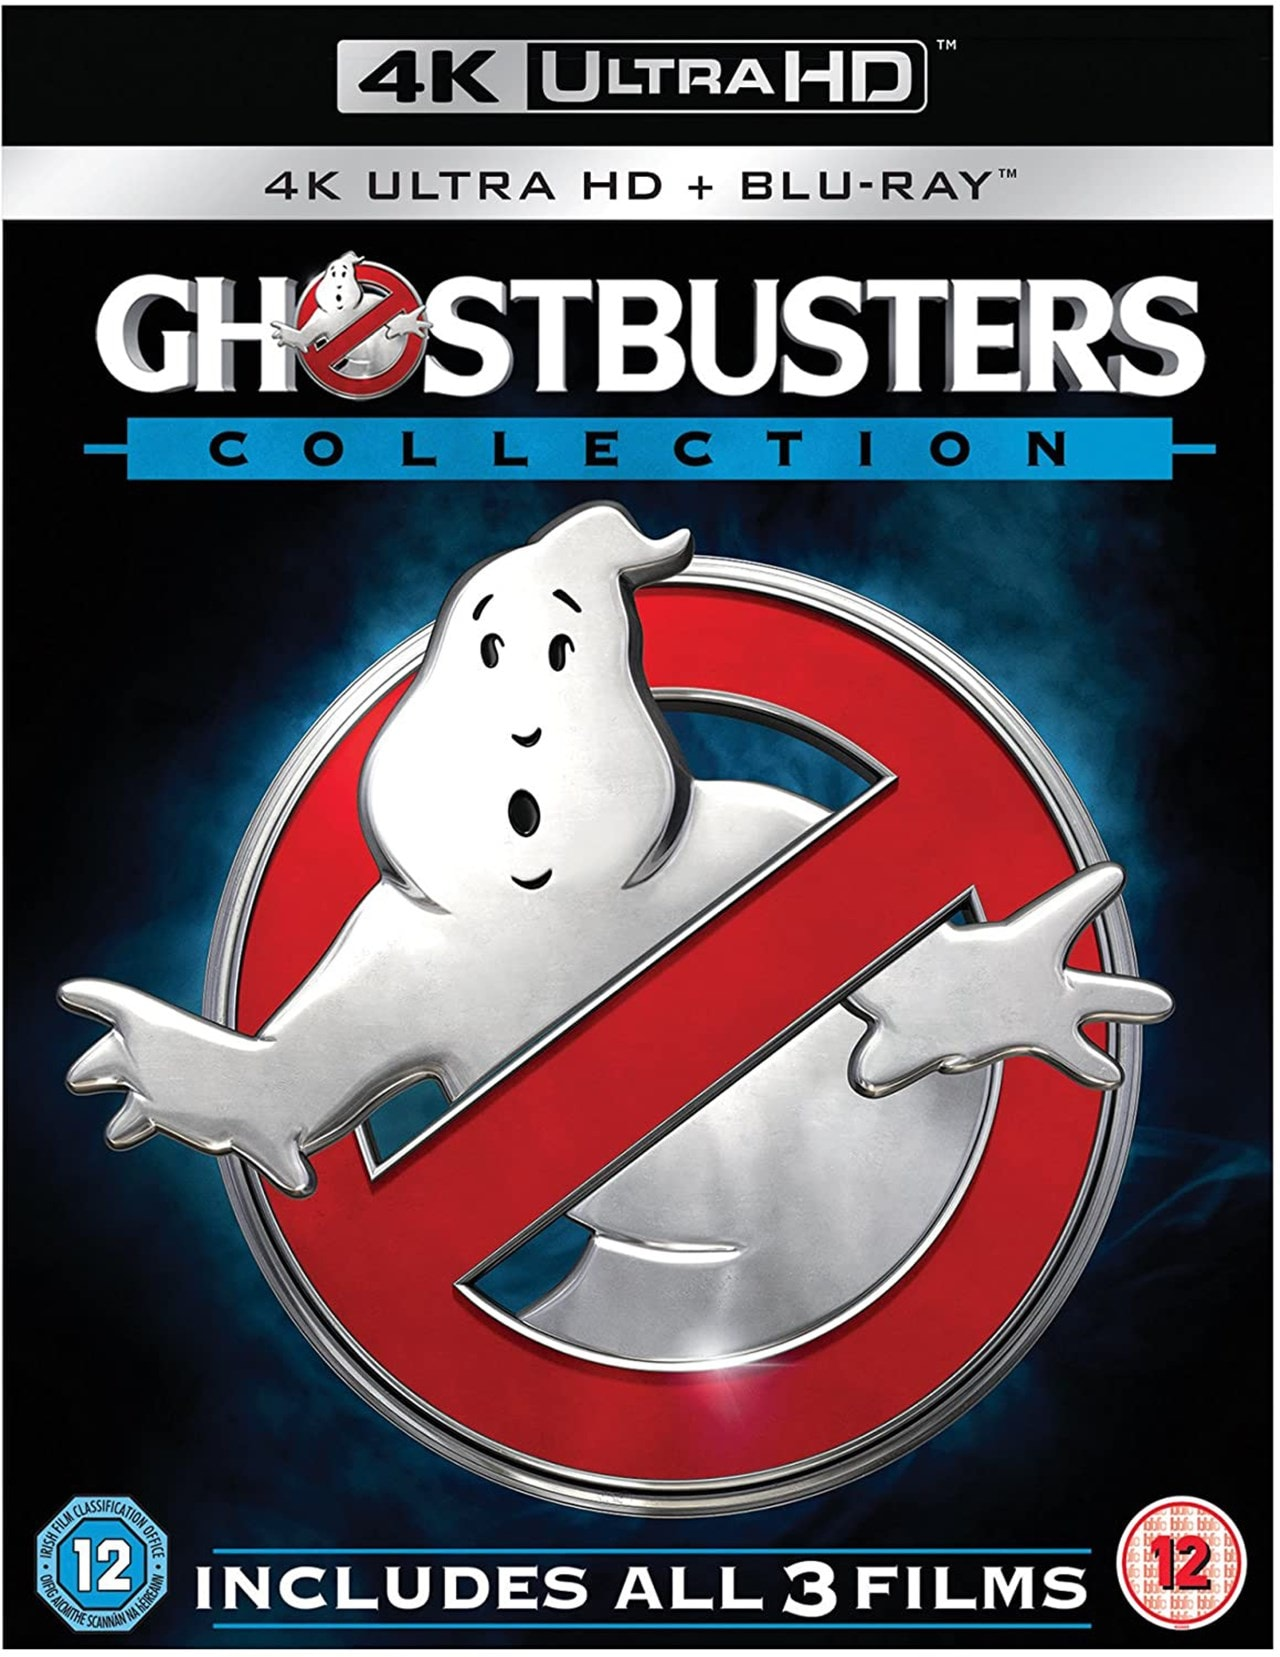 Ghostbusters 1-3 Collection - 1